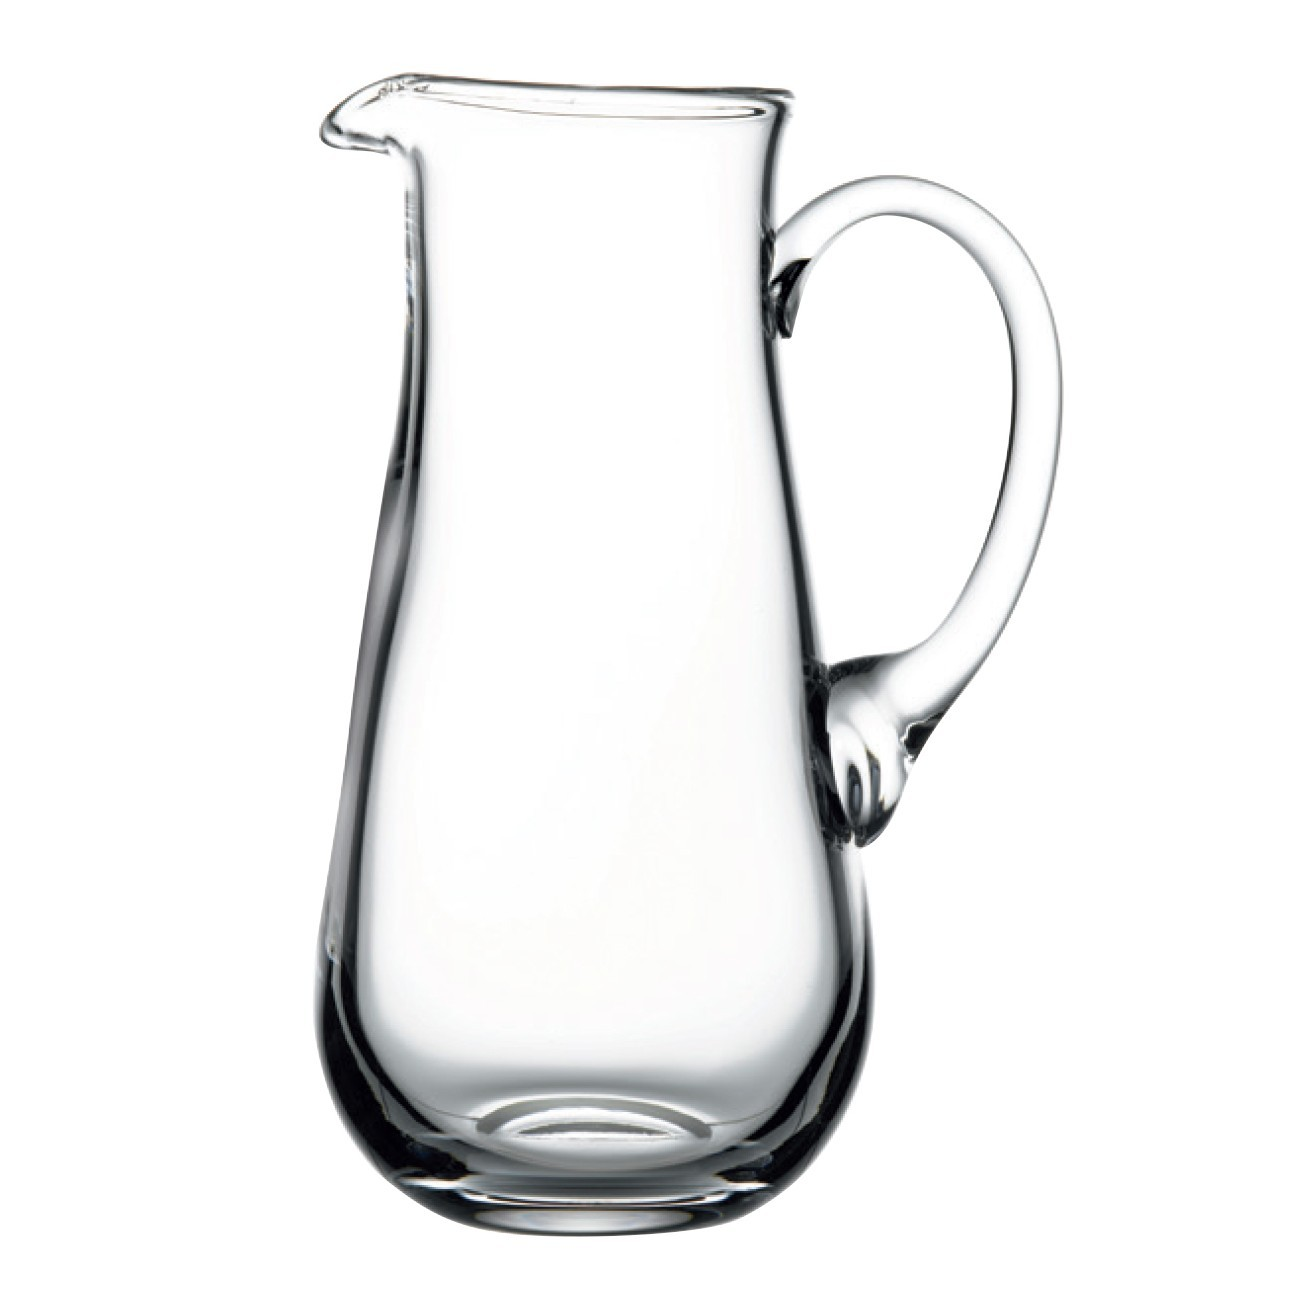 Made To Order 8.5H x 3.5T 26.75 oz Handmade Pitcher/Case of 6